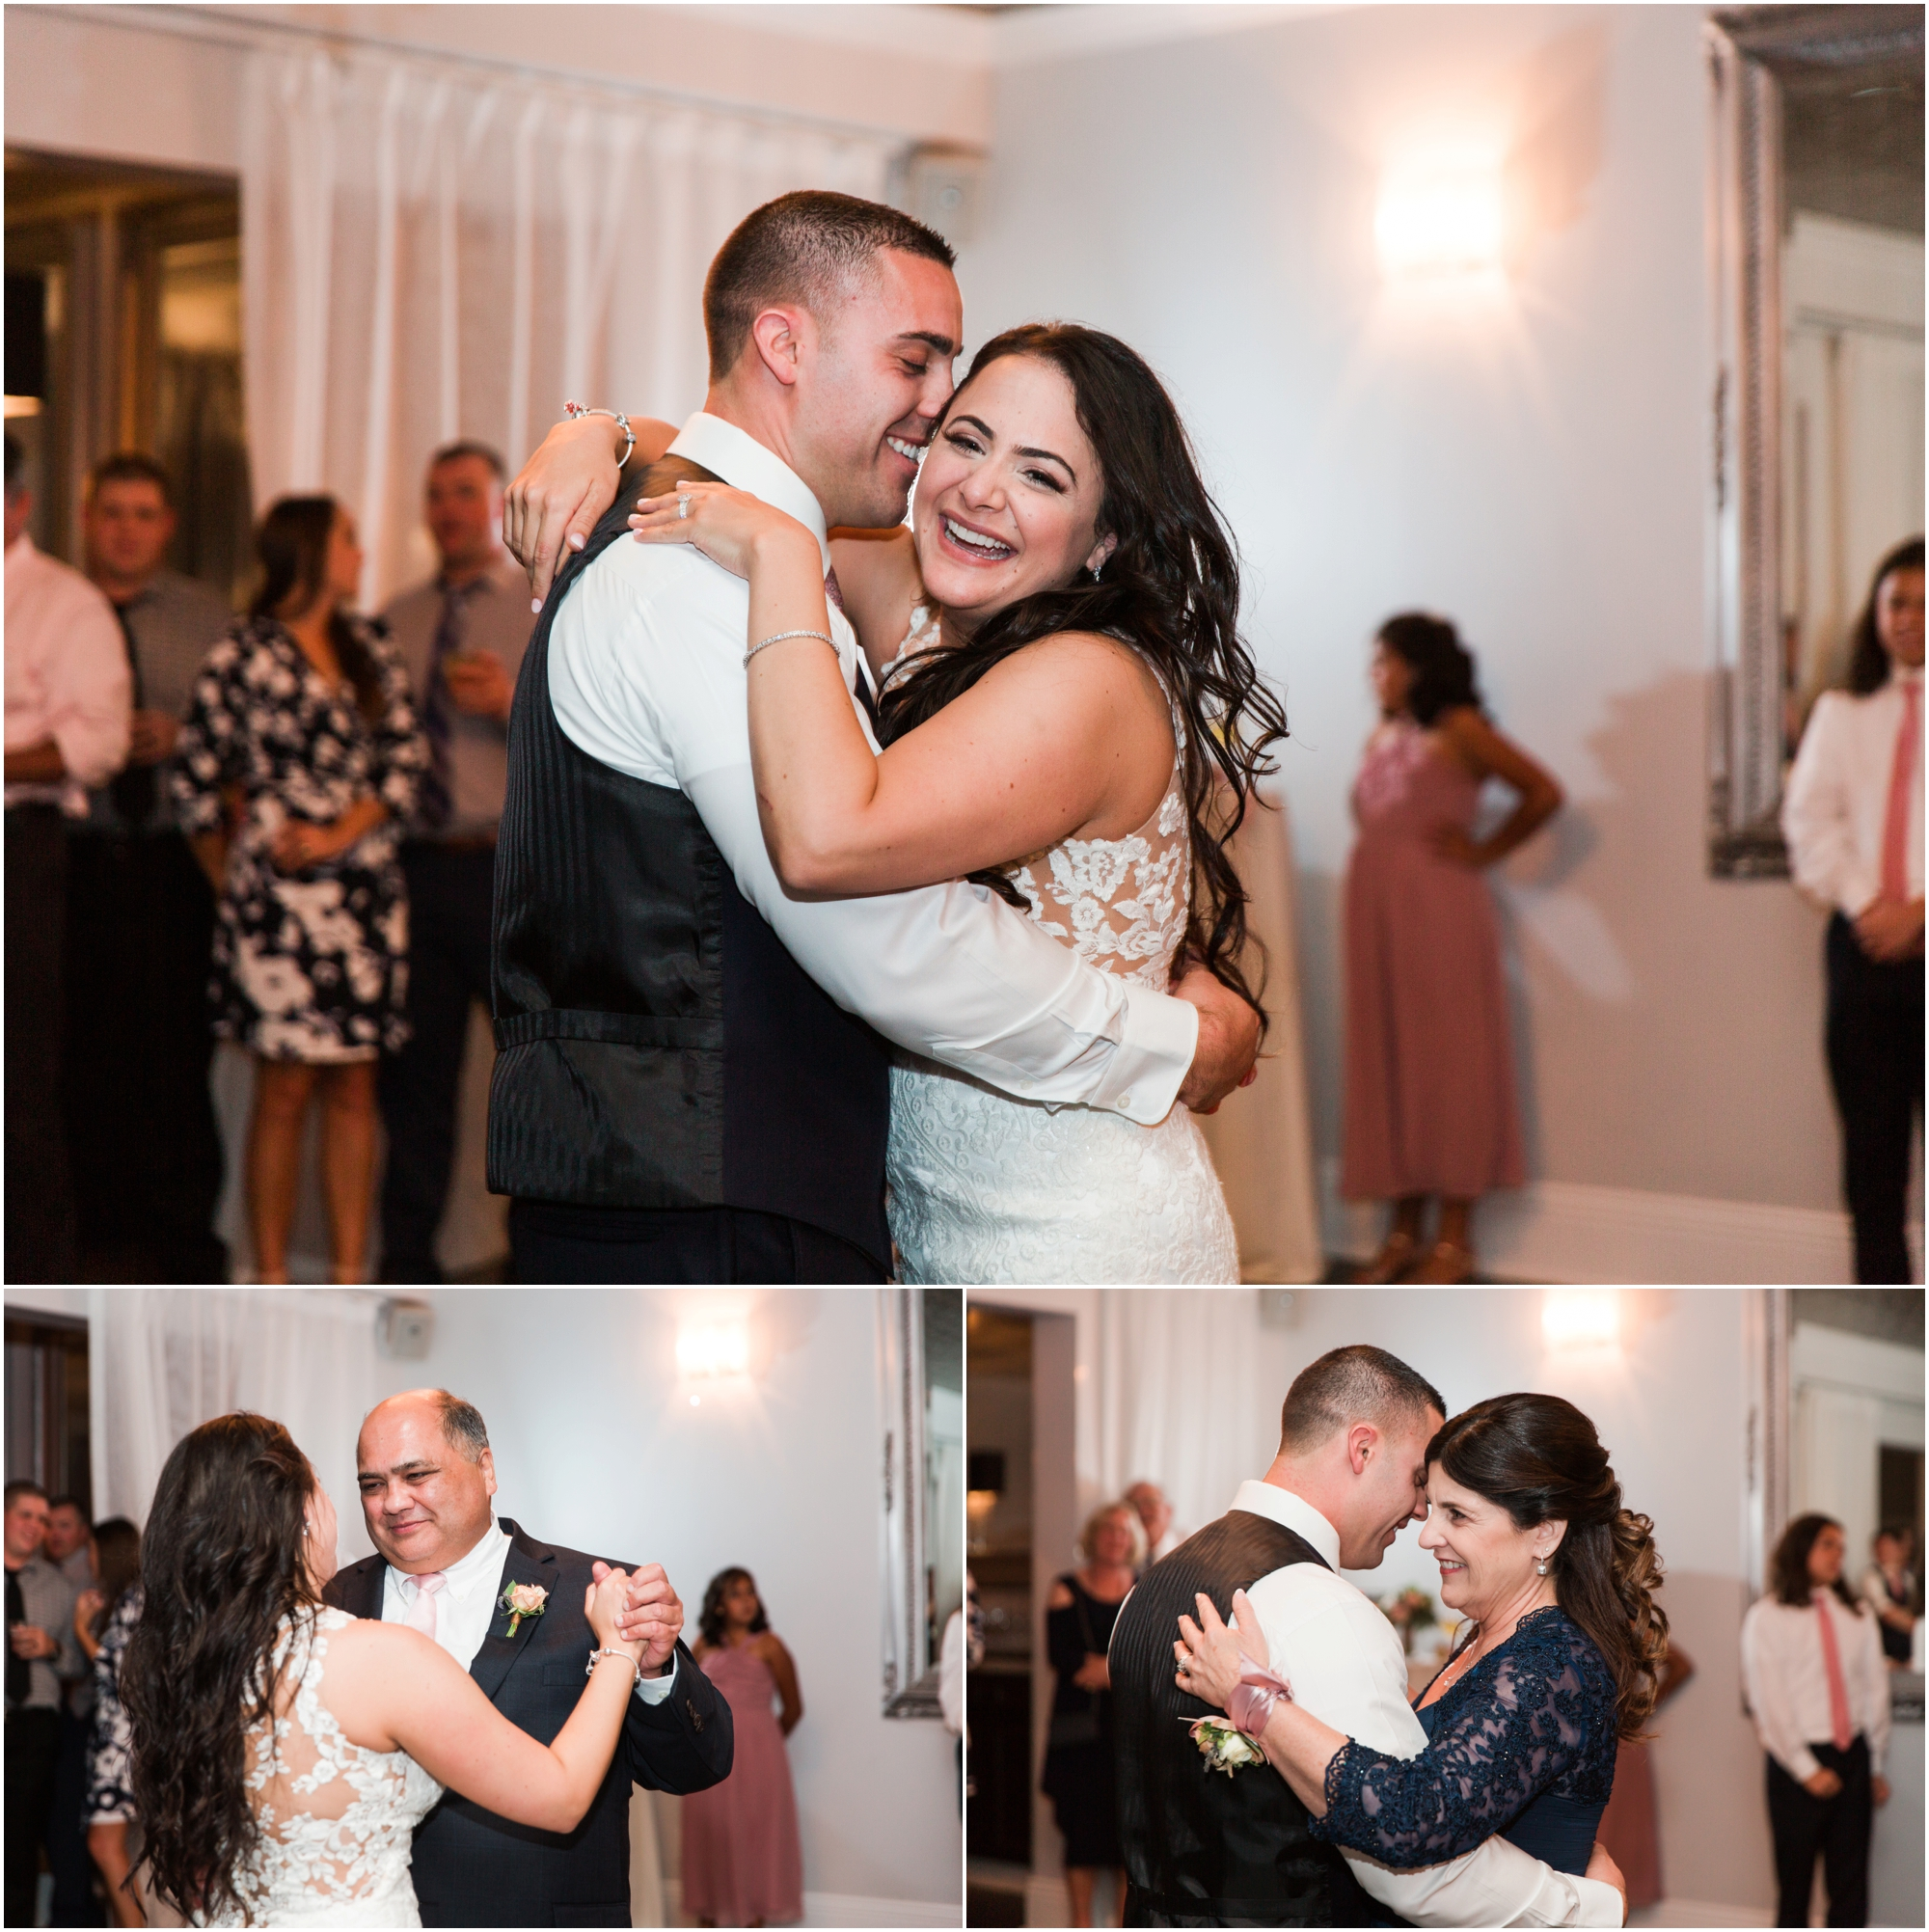 Willow Heights Mansion wedding by Briana Calderon Photography based in the Greater Seattle & Tacoma, WA_0807.jpg